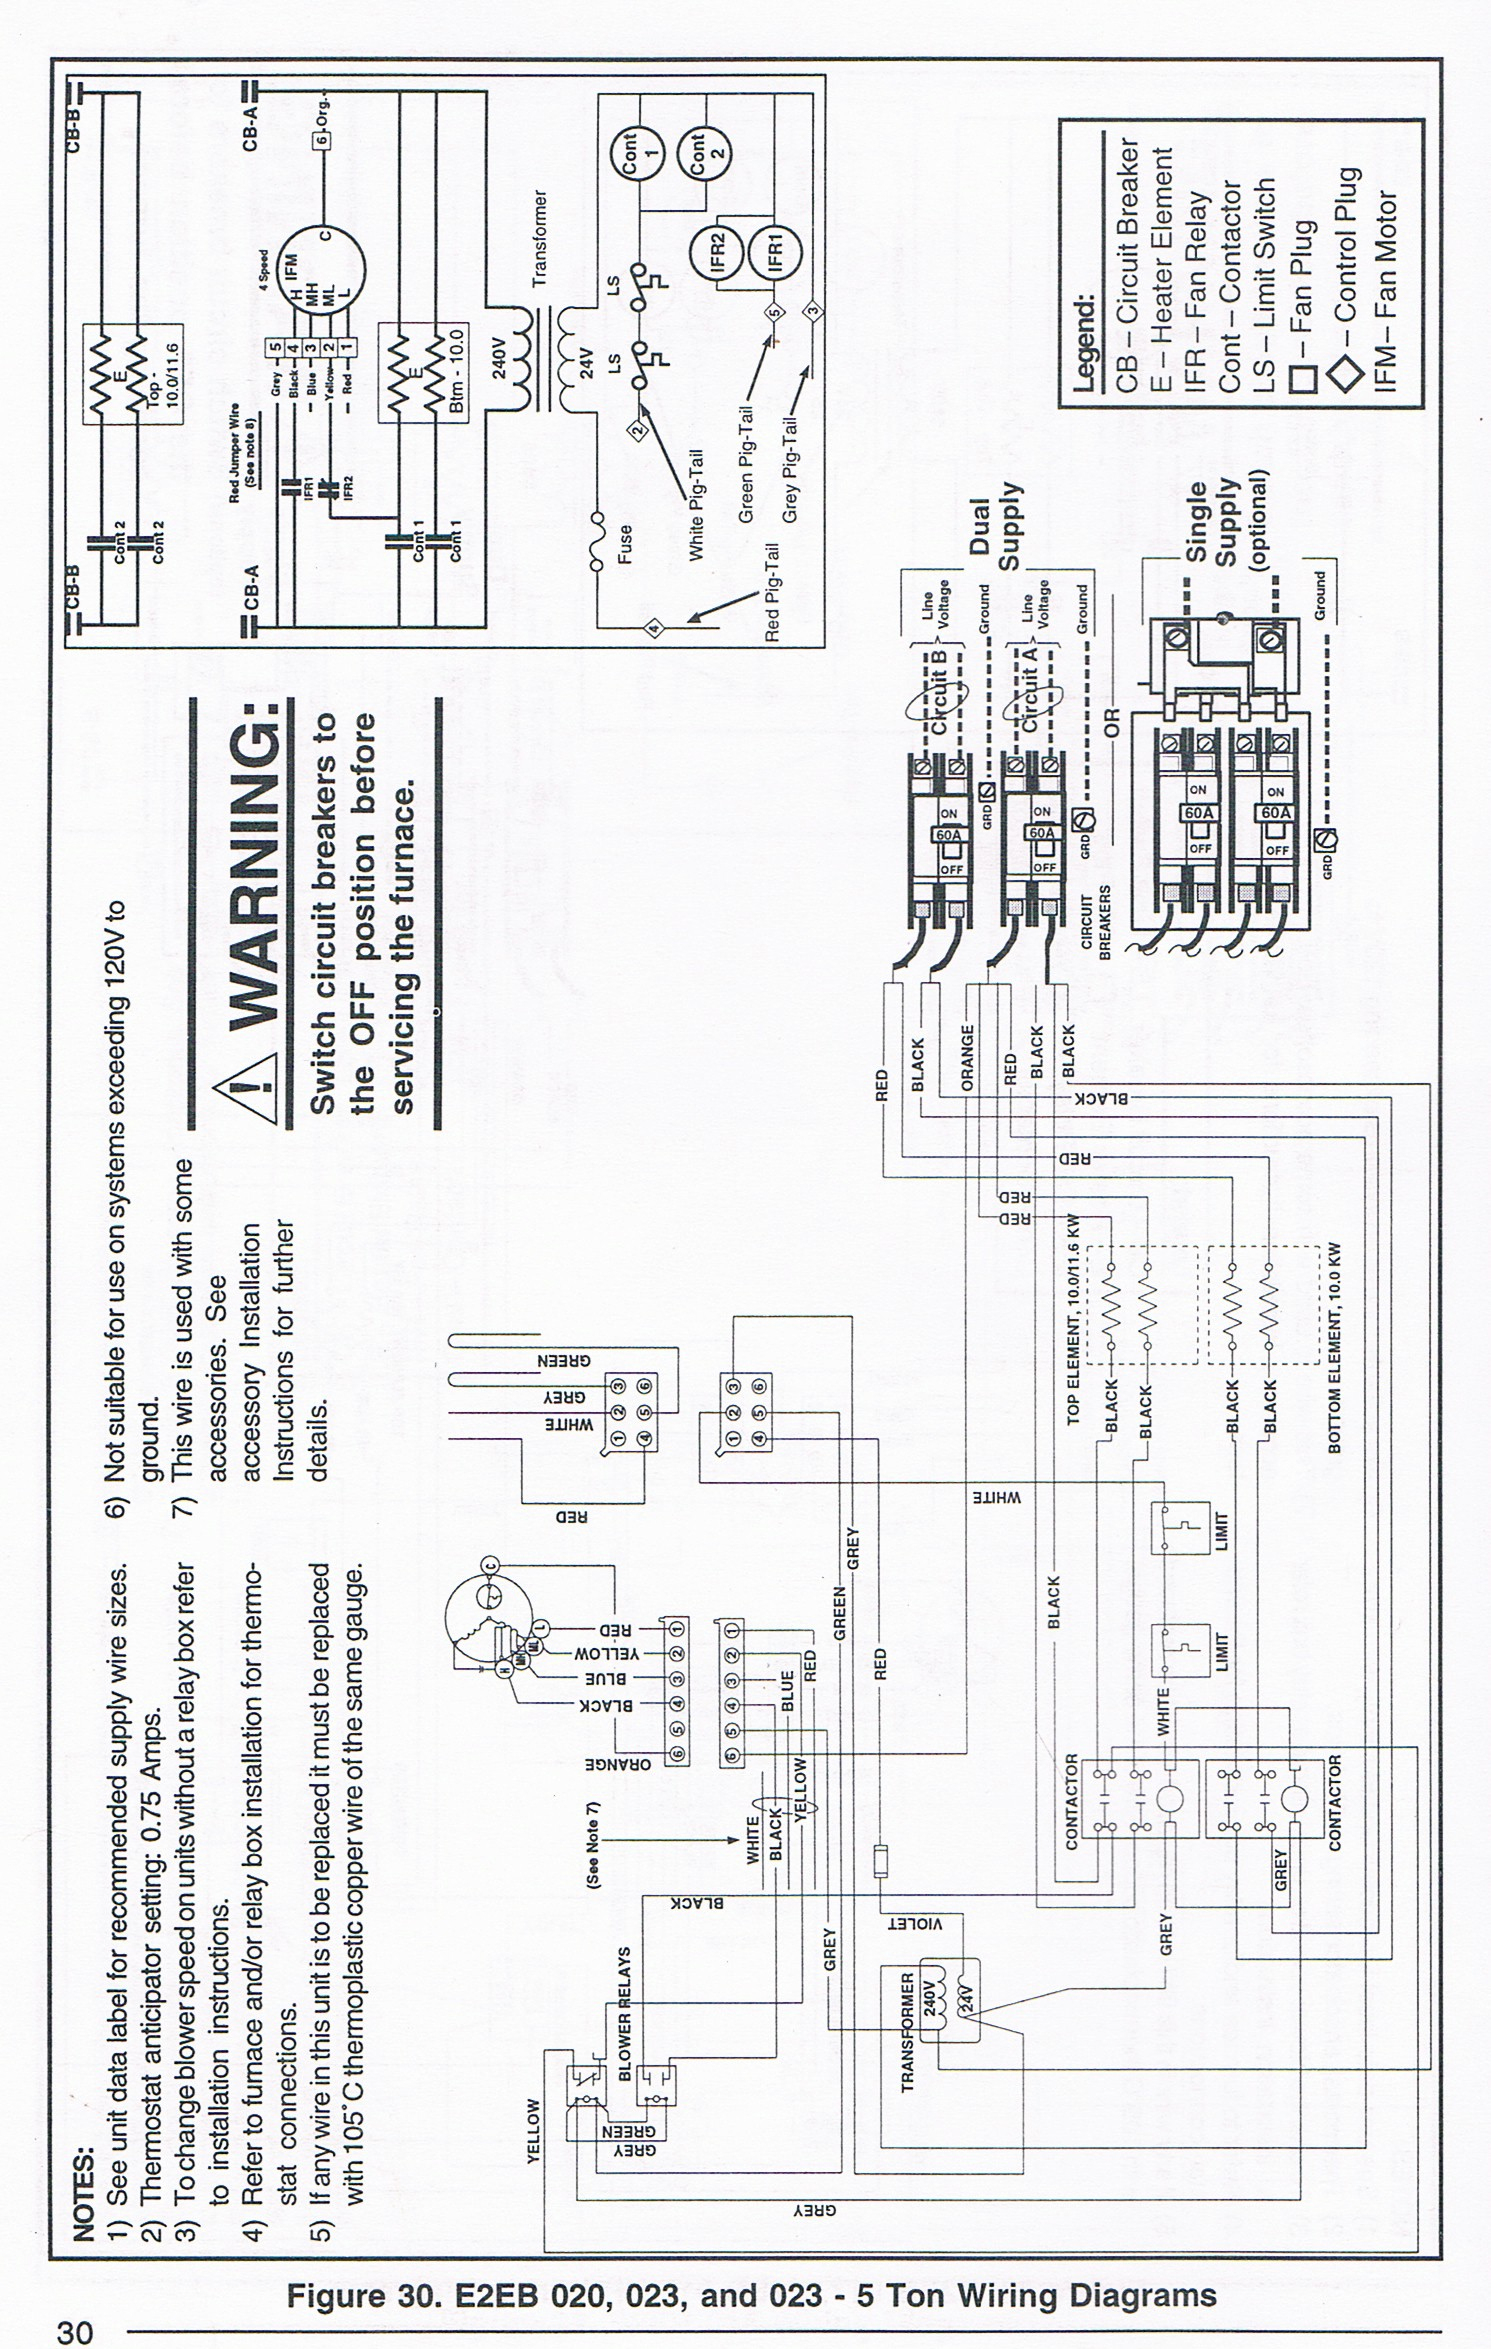 Coleman Mobile Home Electric Furnace Wiring Diagram Collection